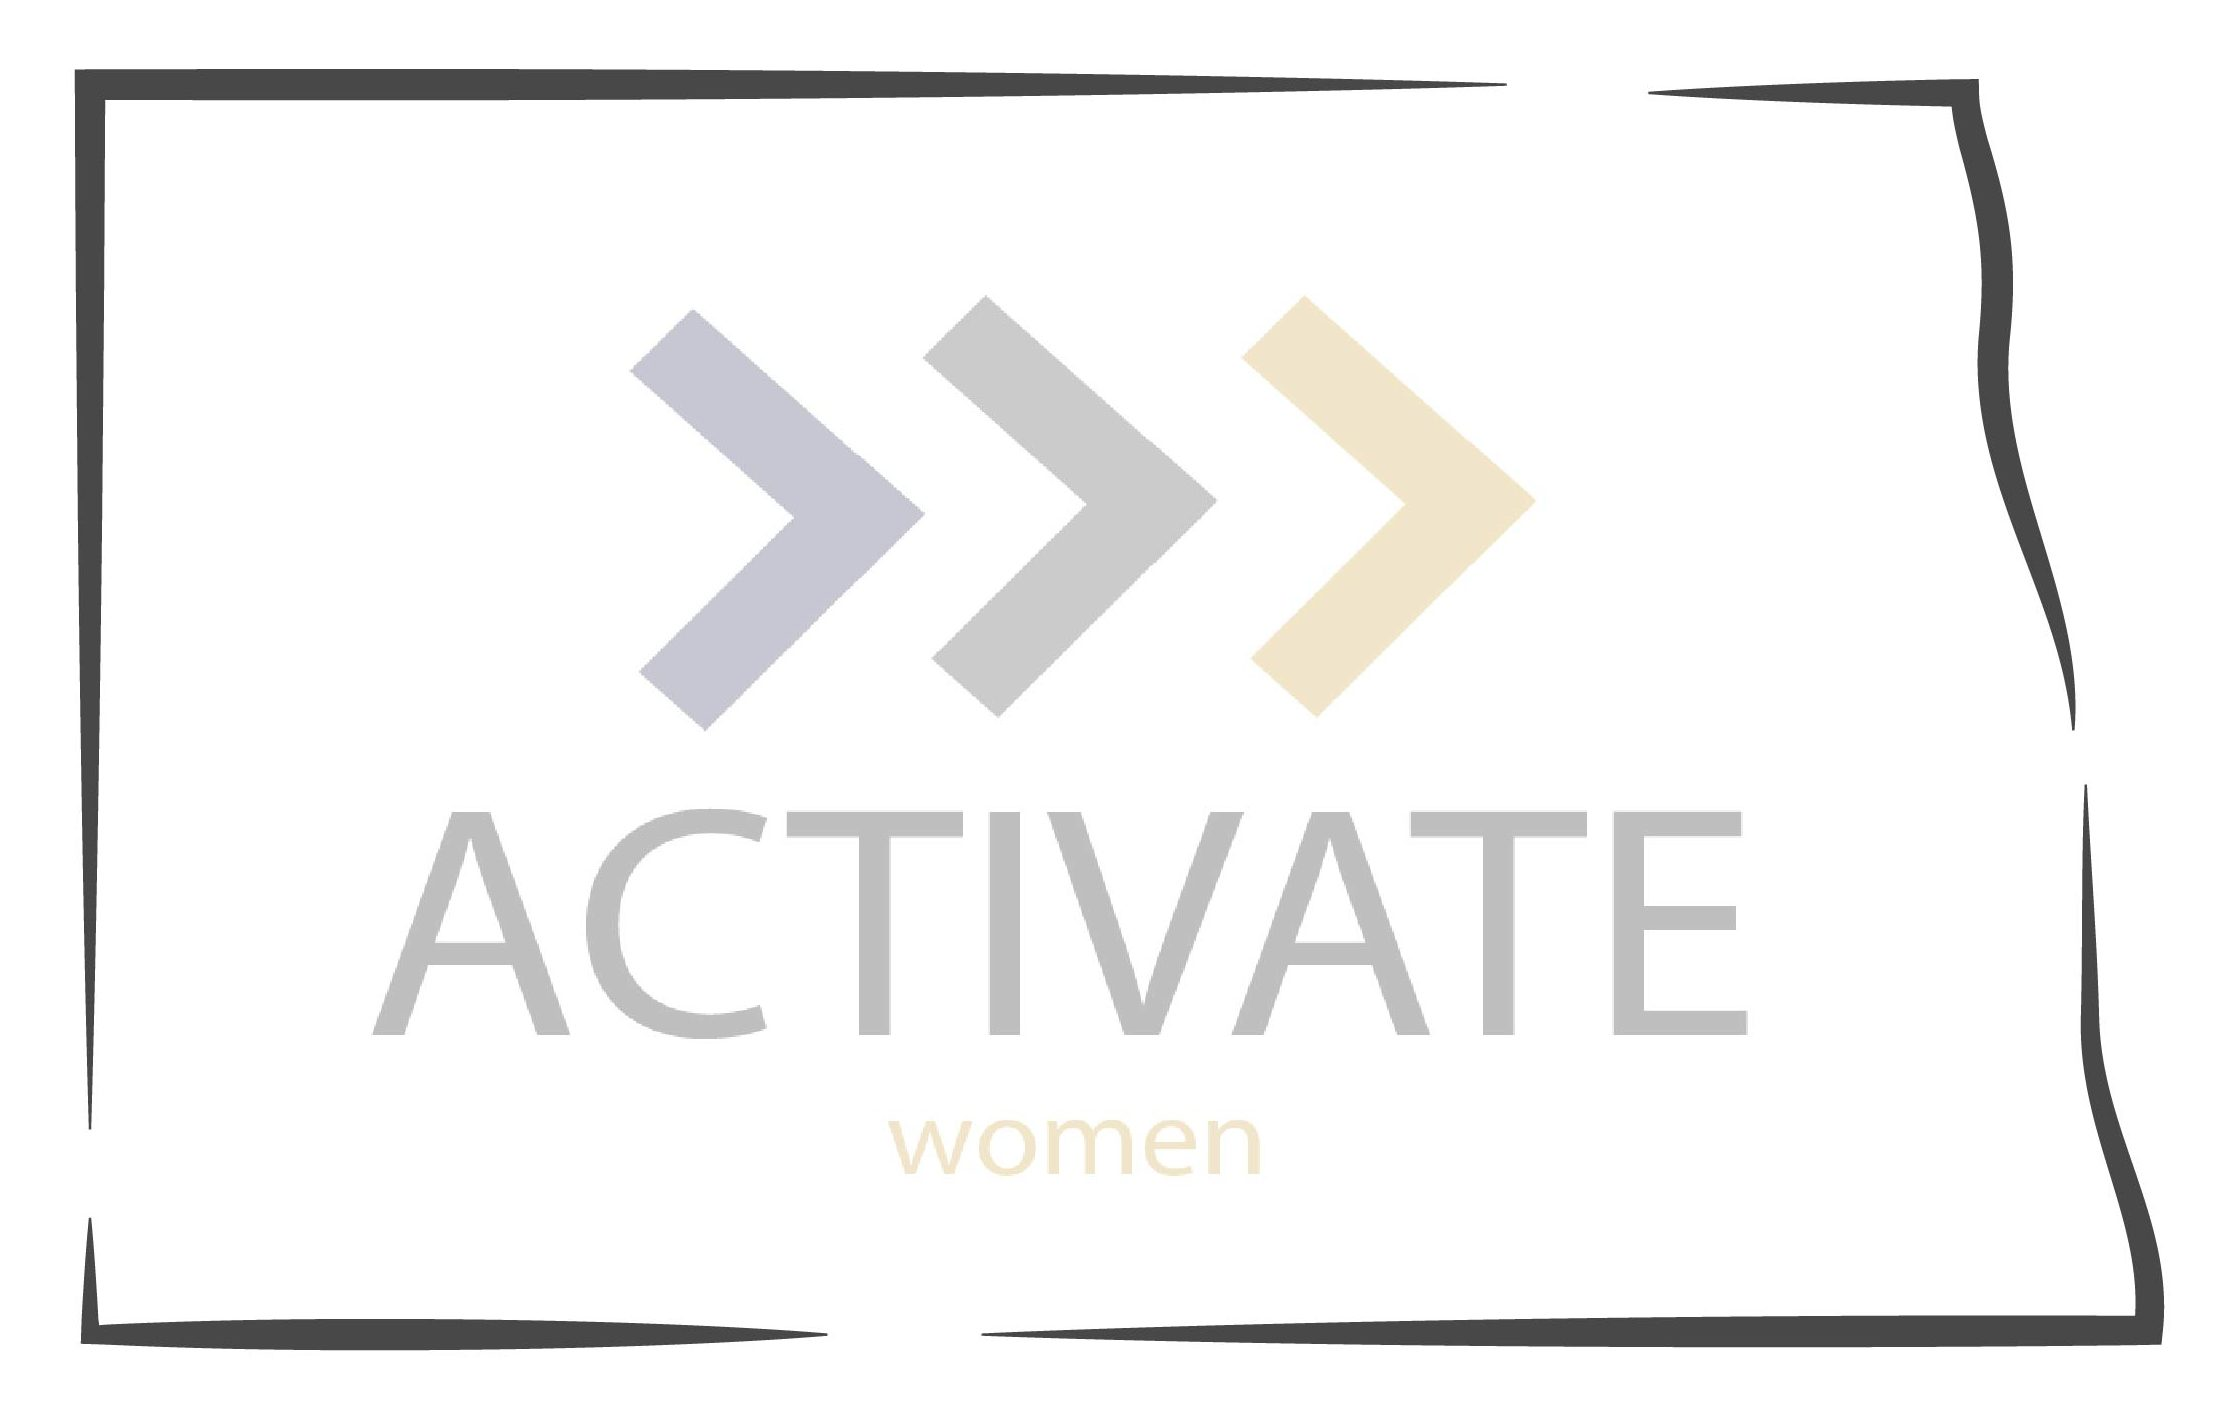 ACTIVATE Map-01